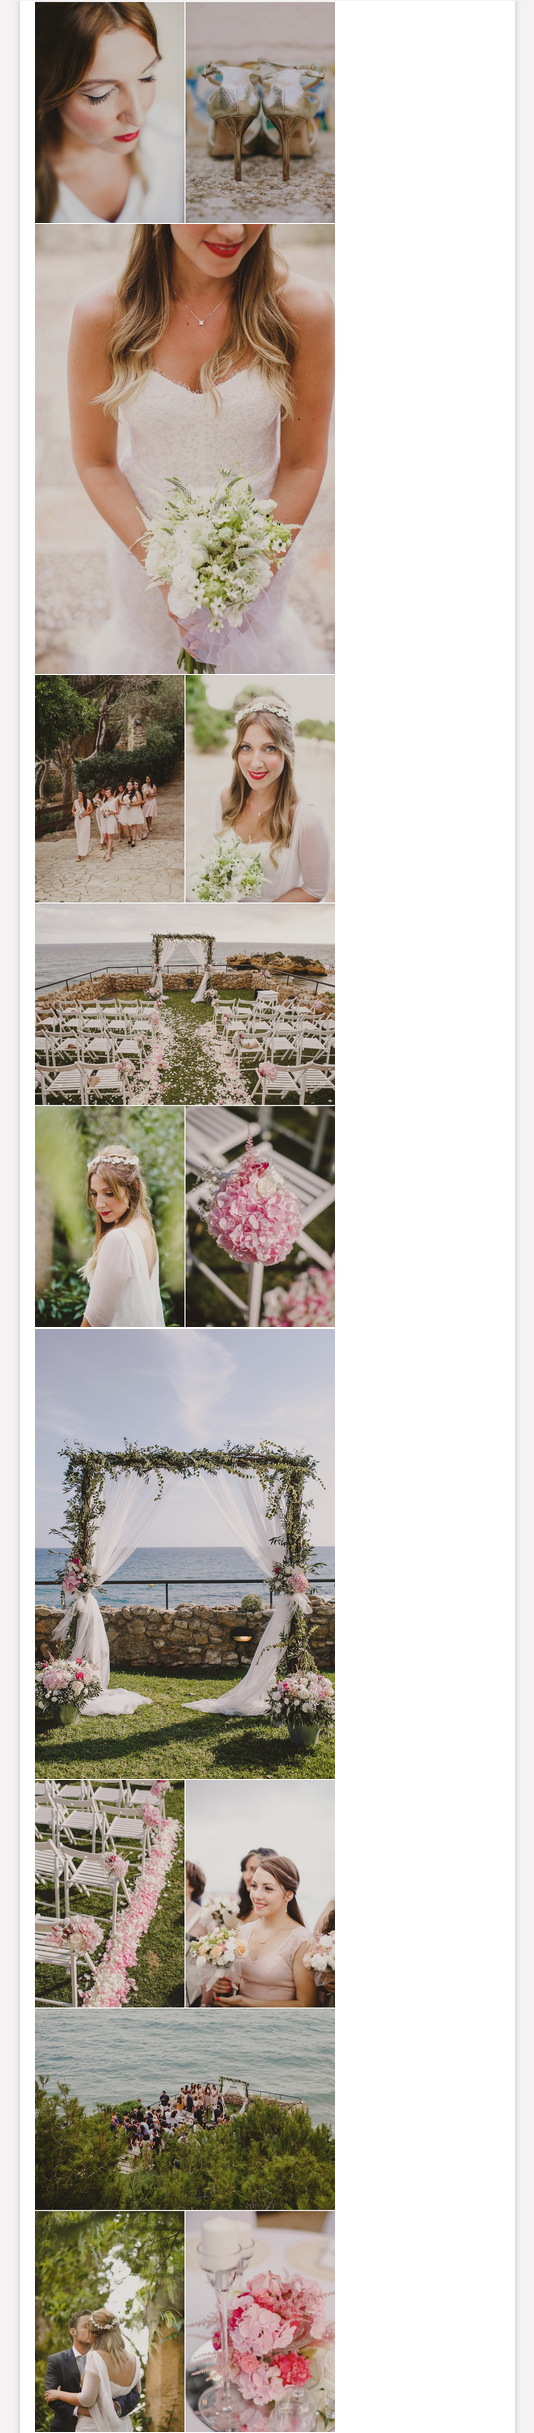 Wedding planner Barcelona on Style Me Pretty www.bodasdecuento.com 2.jpg